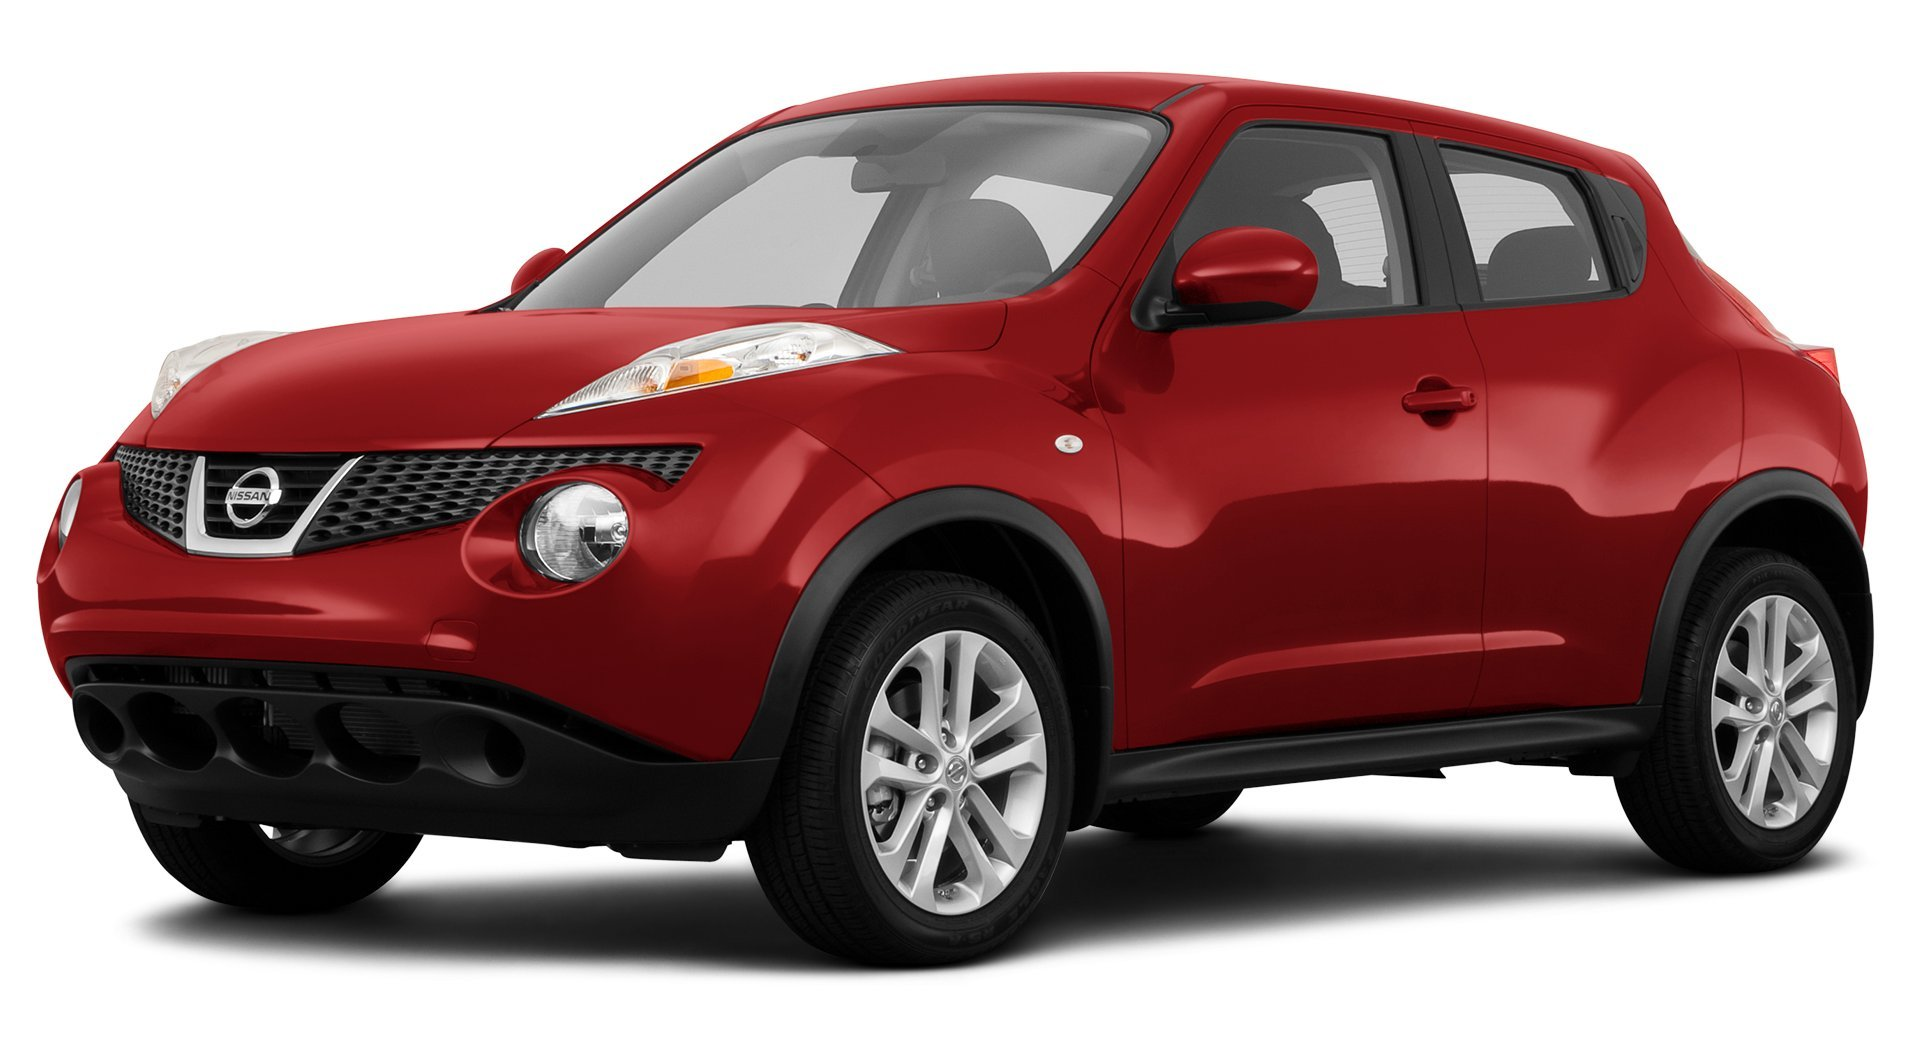 2011 nissan juke reviews images and specs vehicles. Black Bedroom Furniture Sets. Home Design Ideas